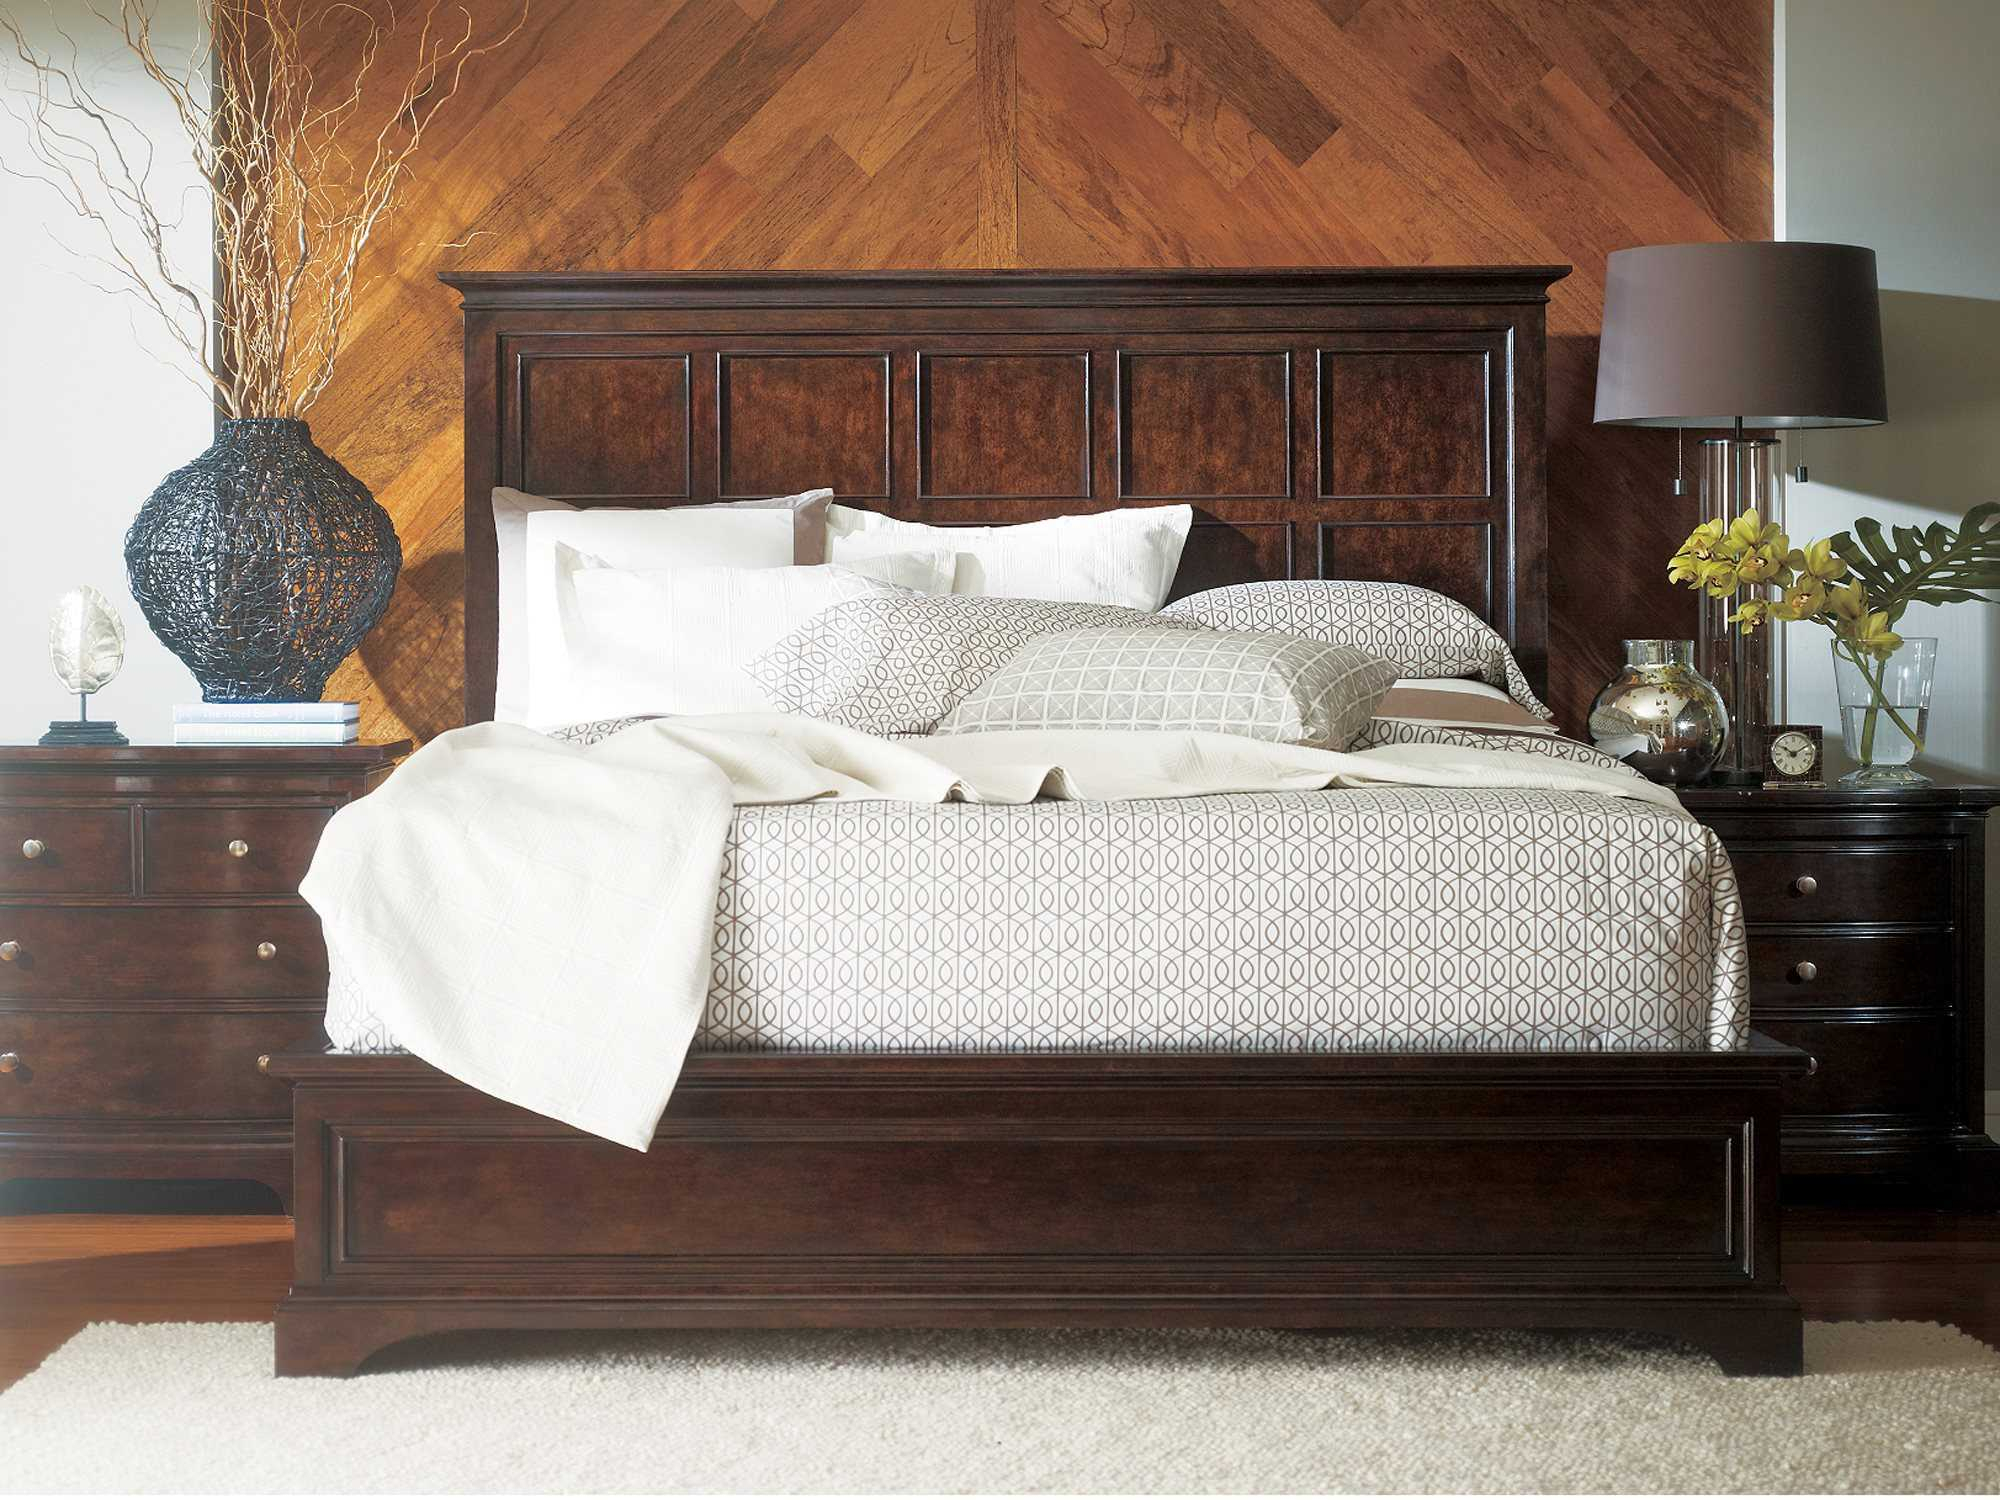 Stanley Furniture Transitional Bedroom Set   Sl0421340Set2 Inside Bedroom Sofas And Chairs (View 5 of 15)